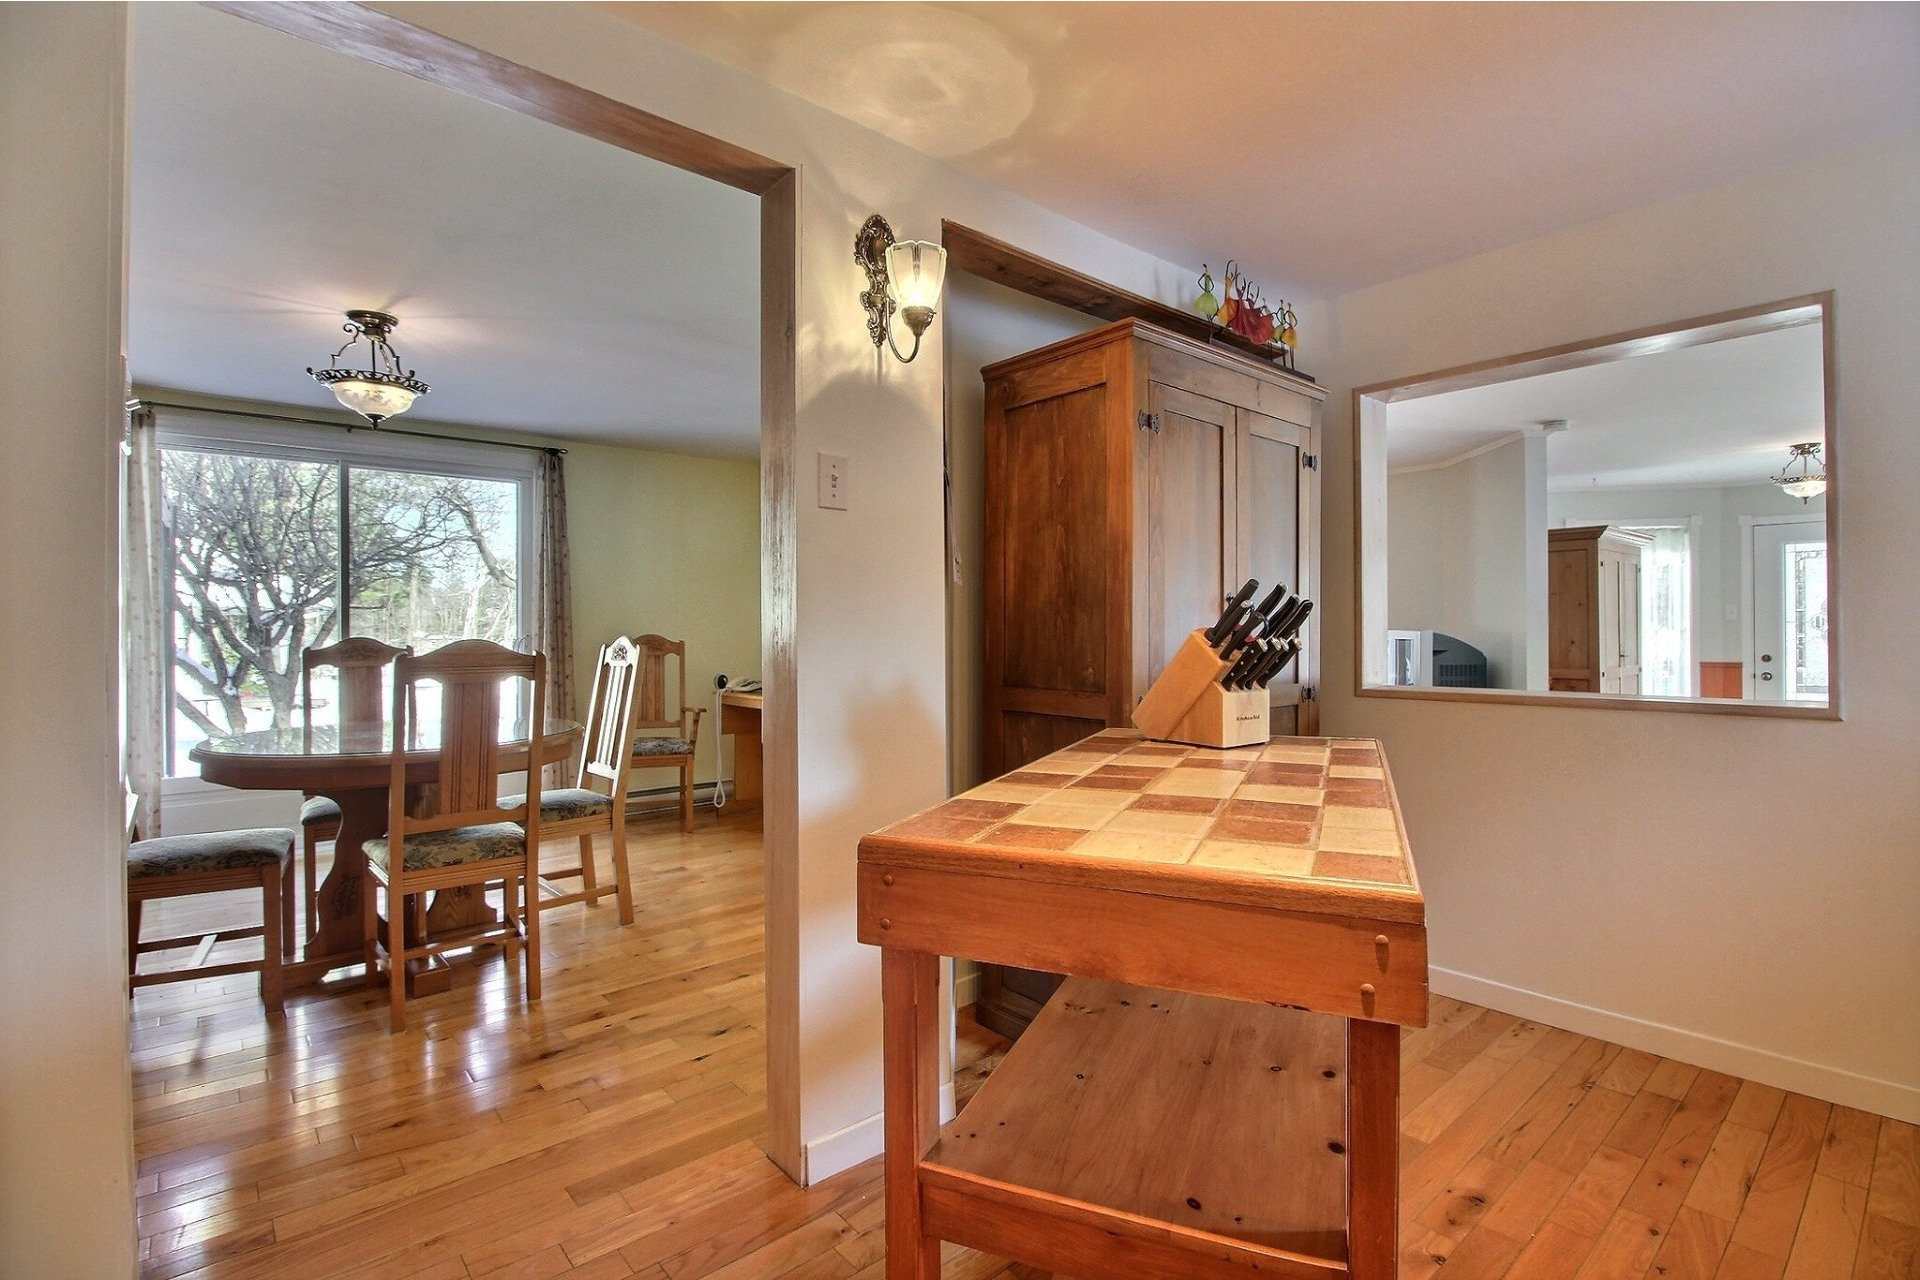 image 11 - House For sale Rawdon - 8 rooms